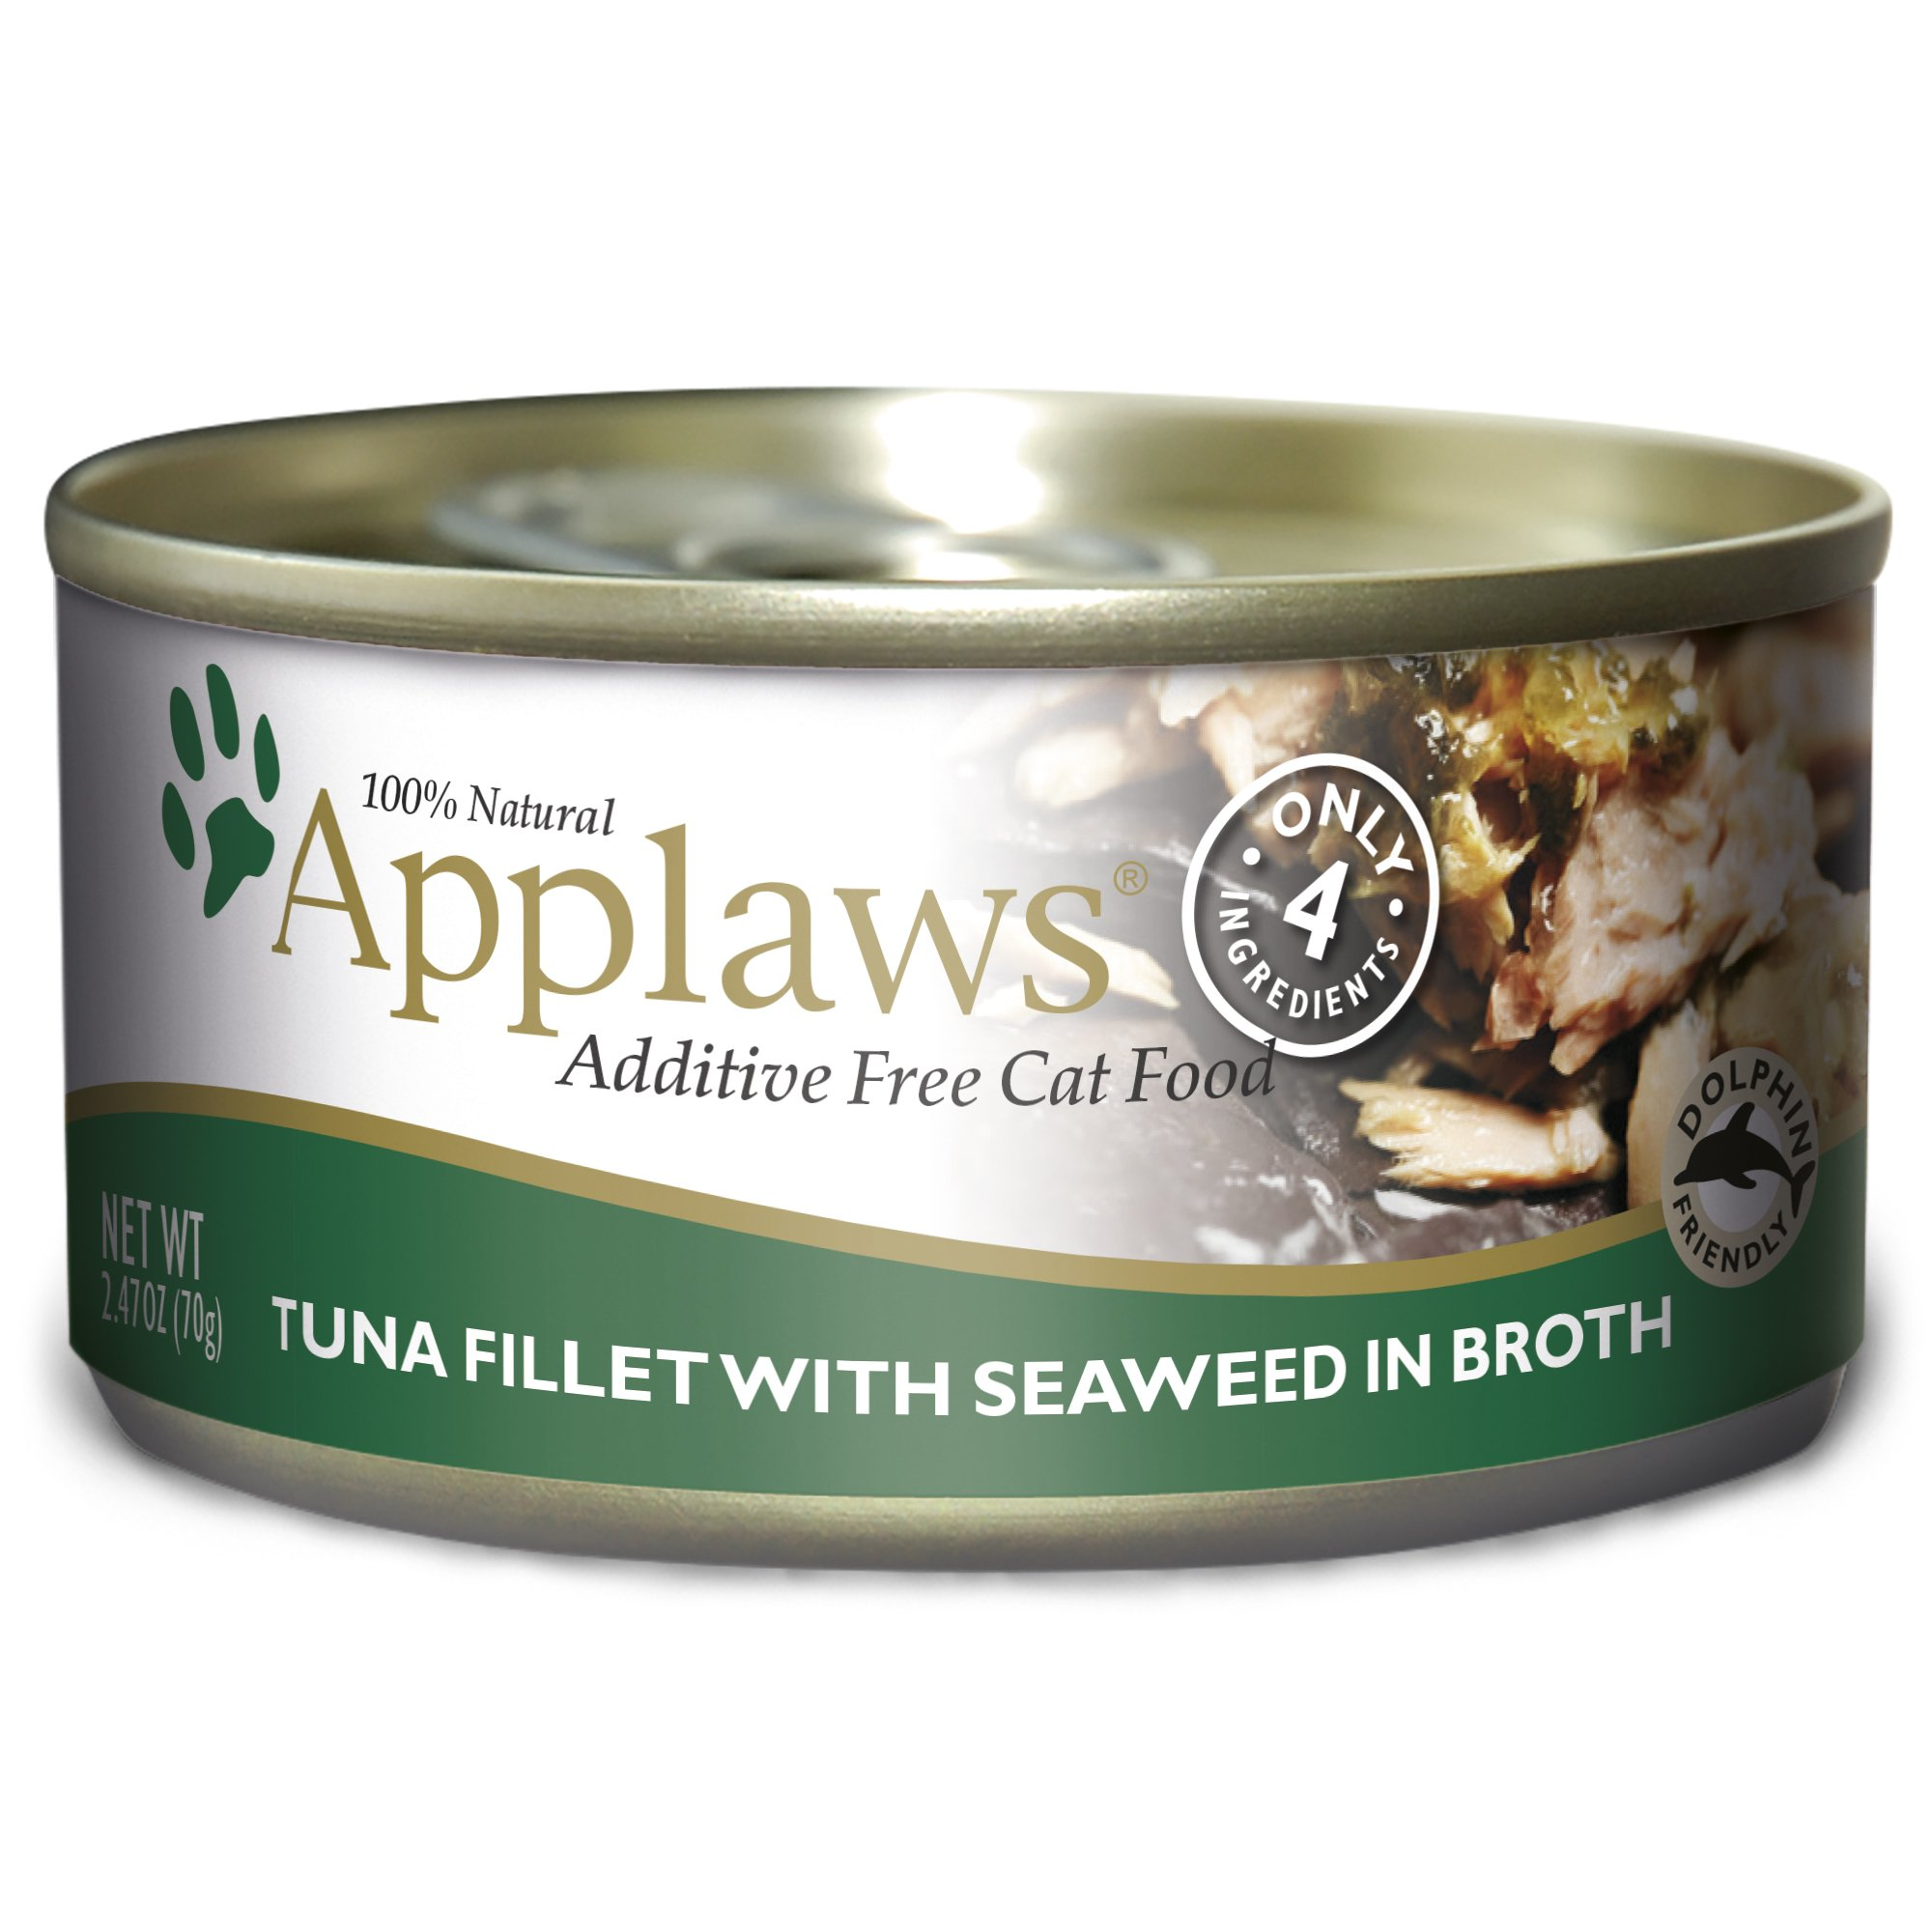 Applaws Tuna Fillet And Seaweed, 24 - 2.47-Ounce Can by Applaws